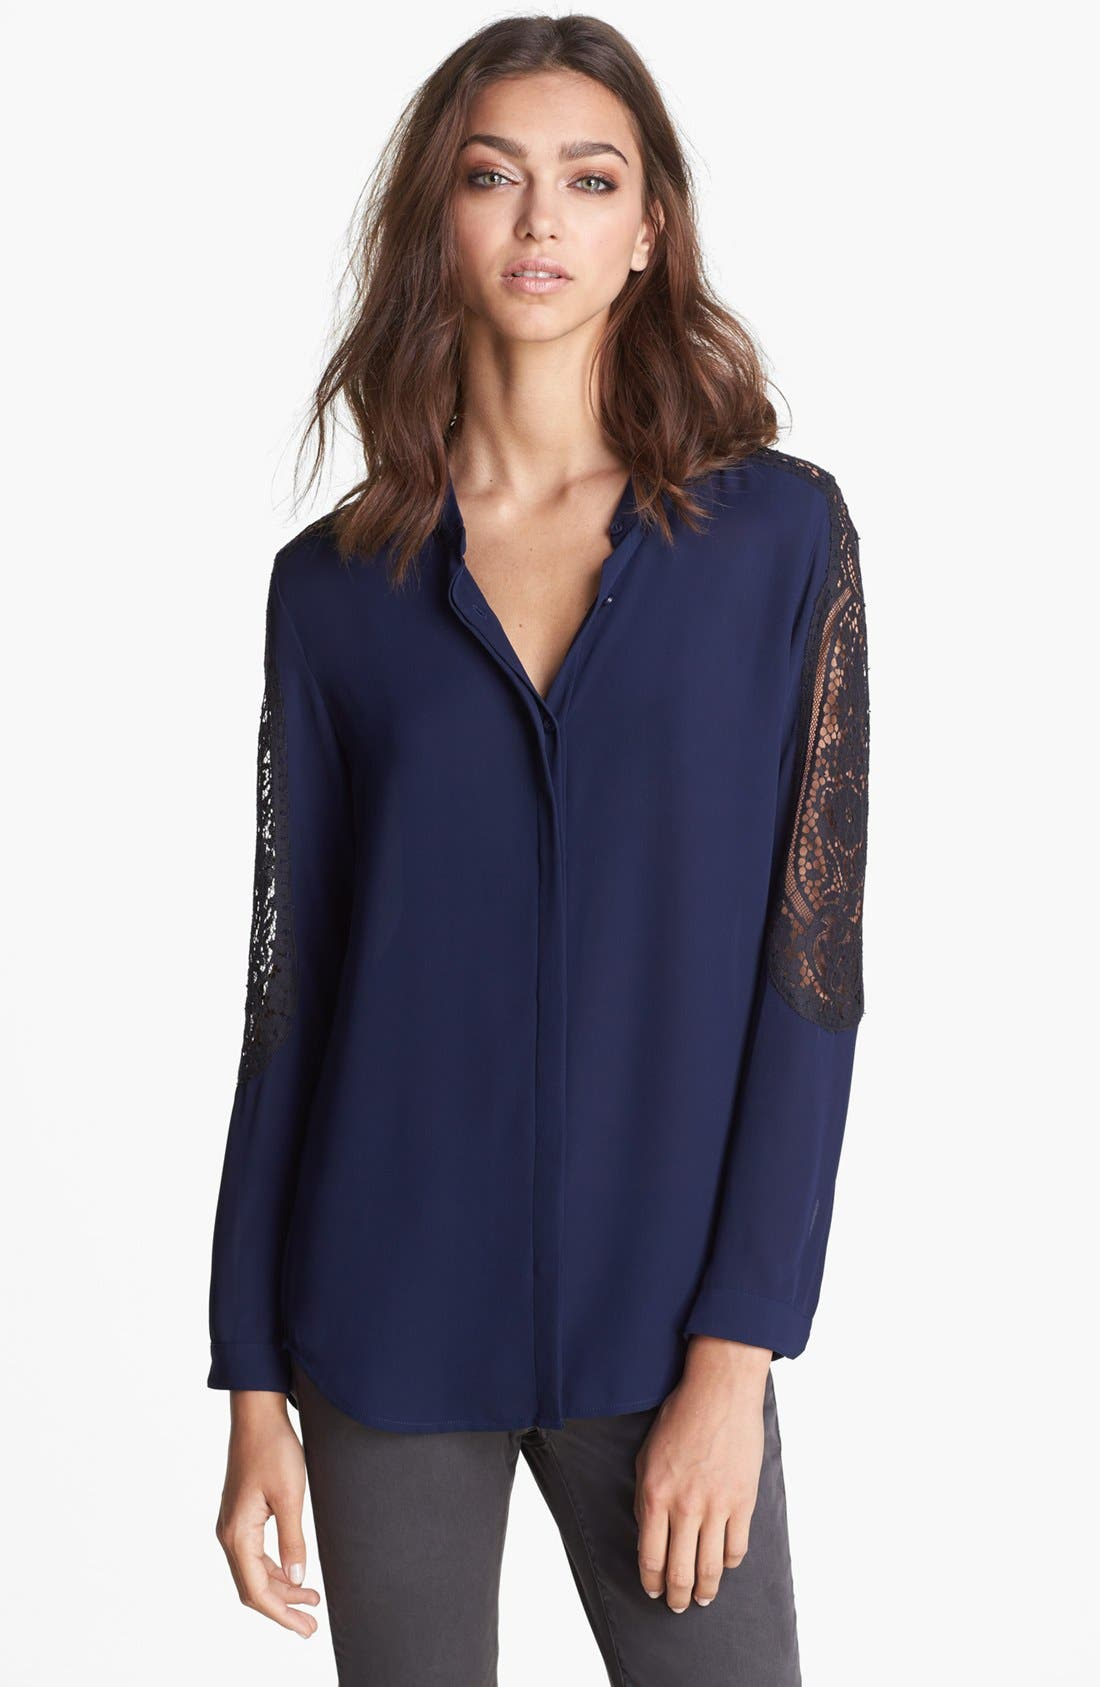 Main Image - The Kooples Lace Sleeve Blouse